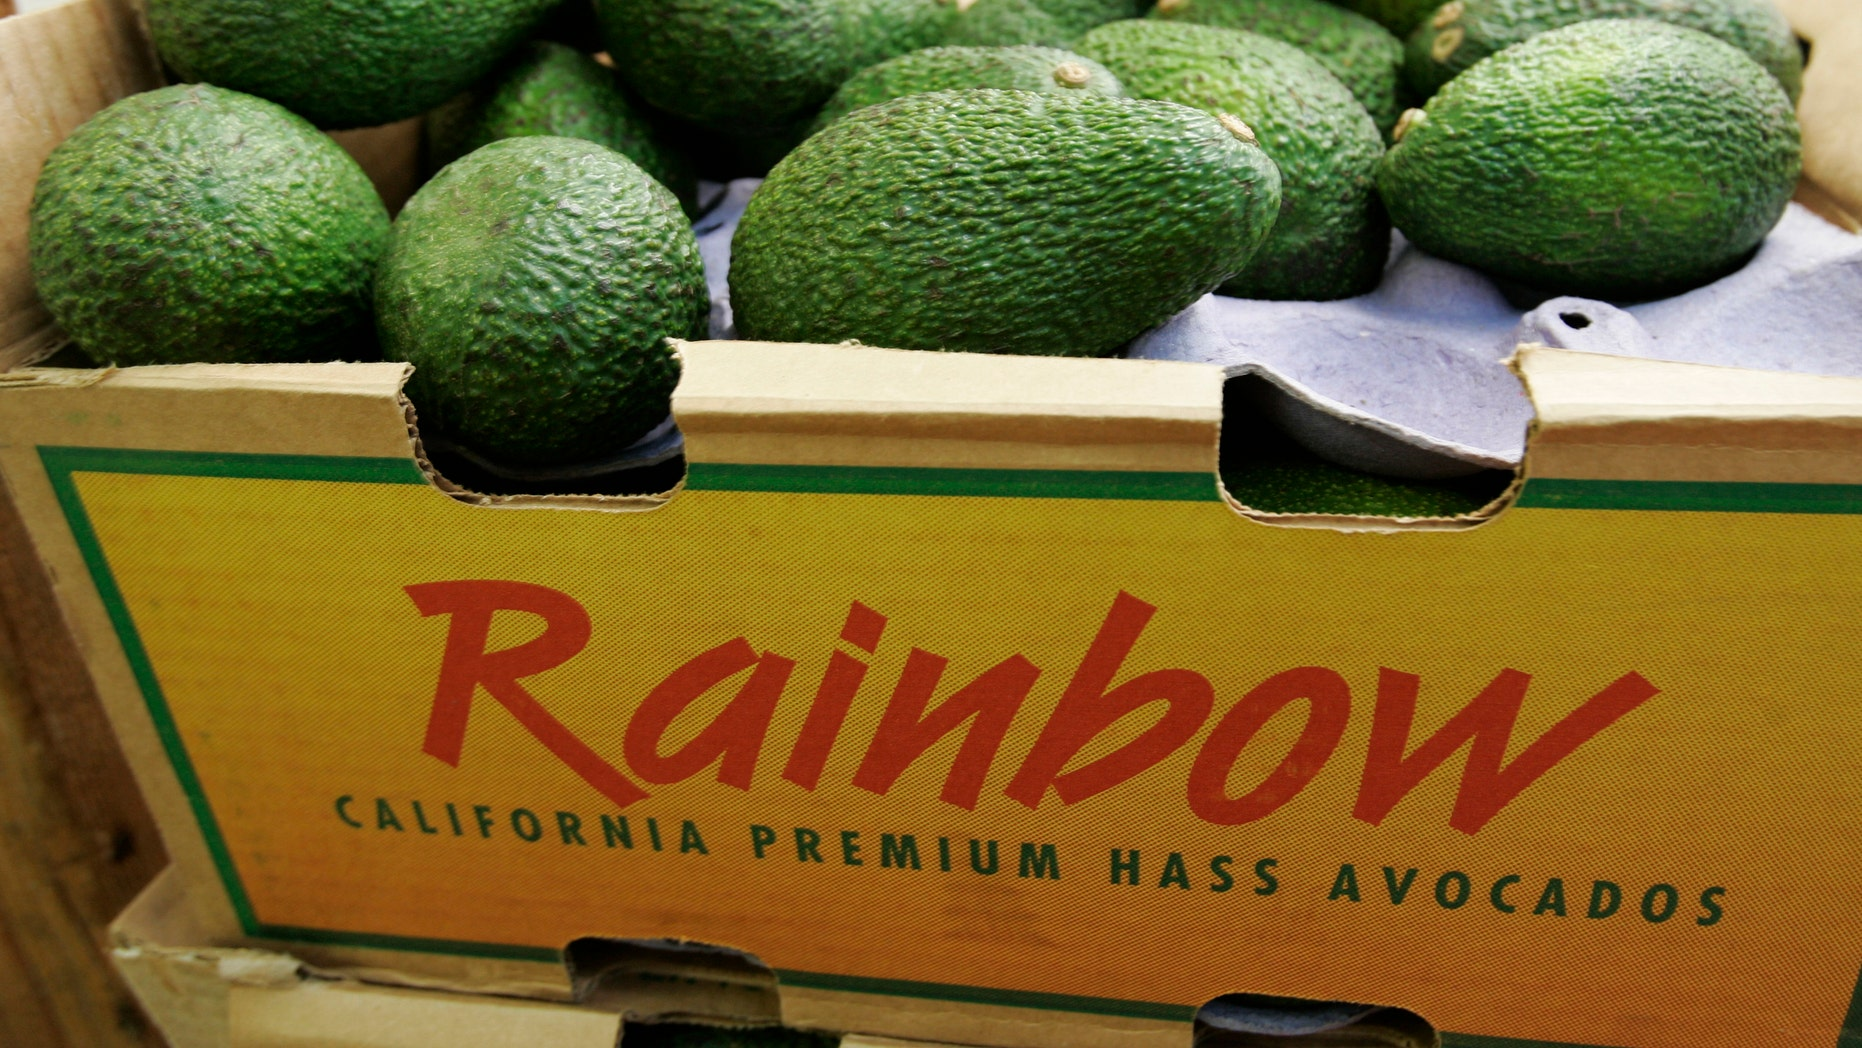 FILE - In this Jan. 17, 2007 photo, California grown avocados are seen on display at a market in Mountain View, Calif.